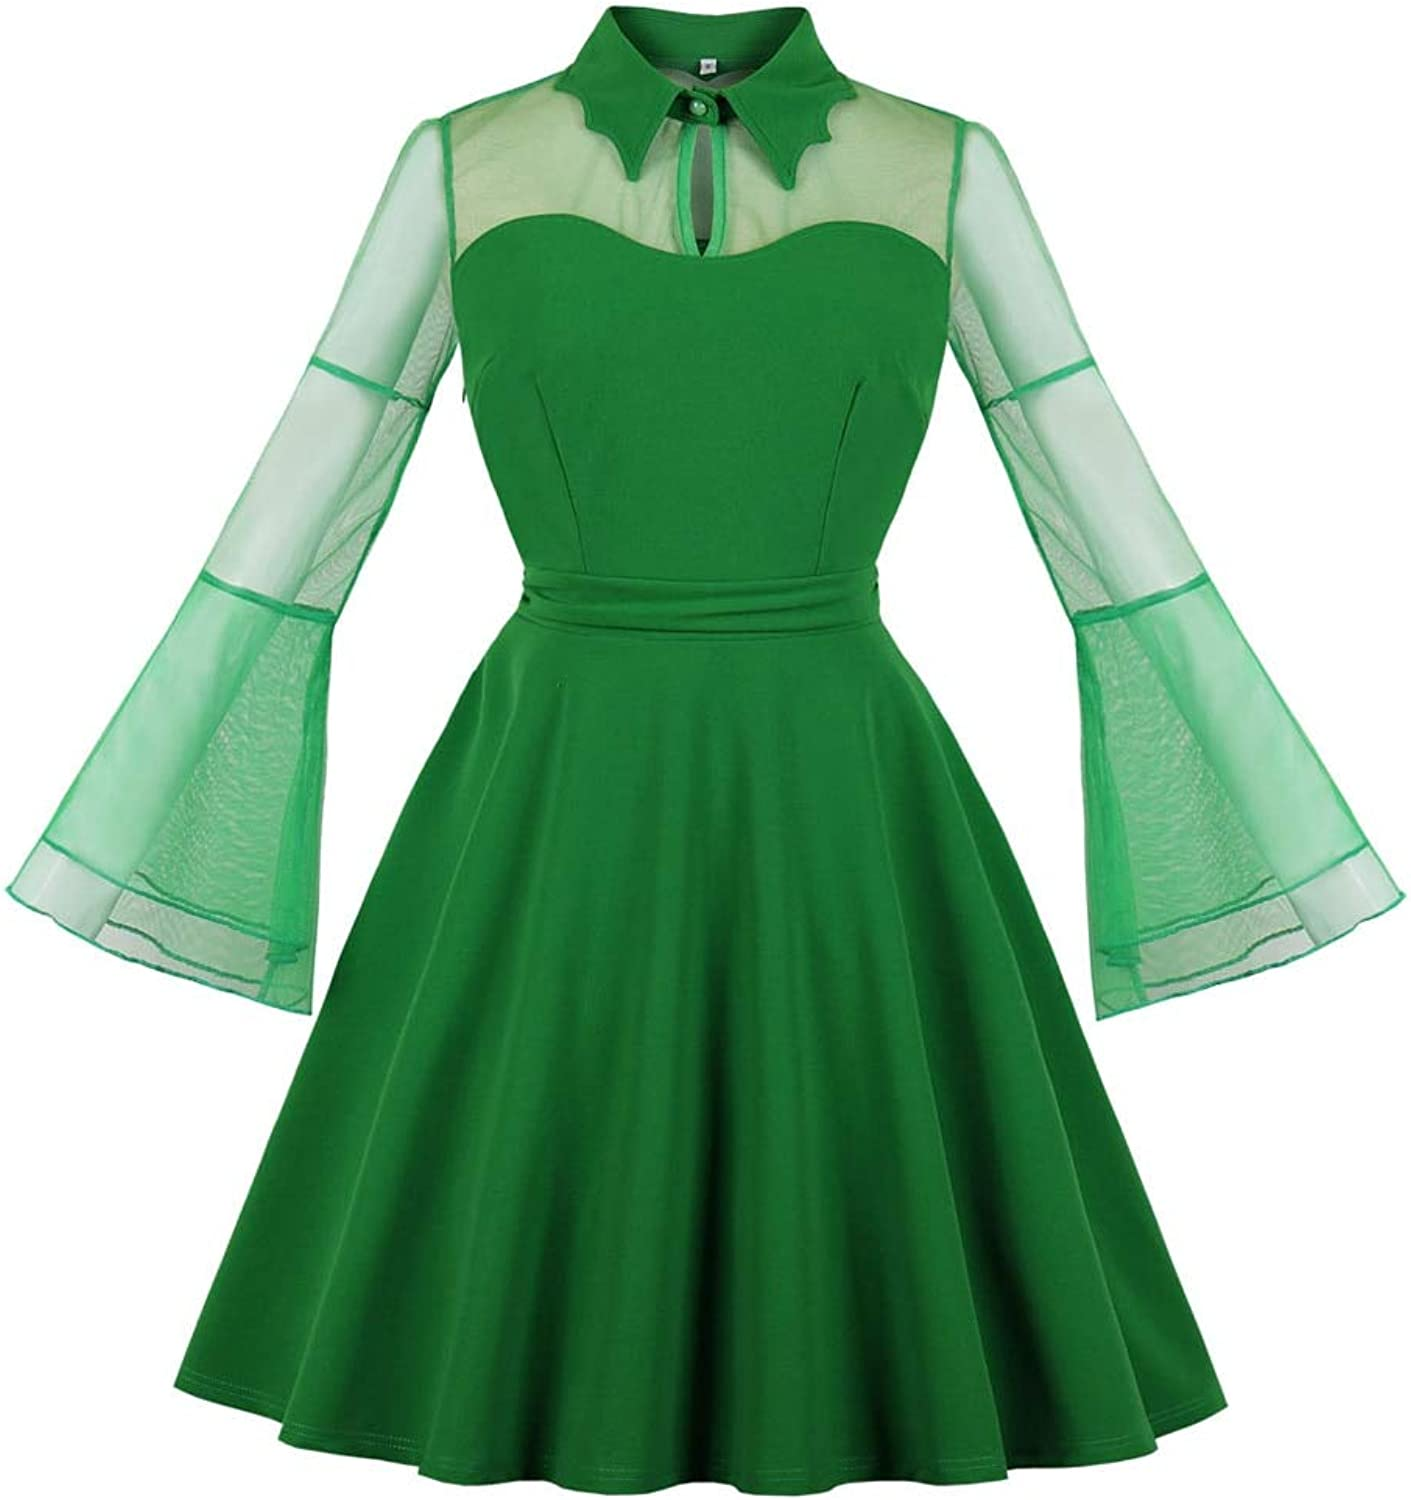 FUZHUANGHM Mesh Lace Green color See Through Retro Dress Long Flare Sleeves Vintage Women Dress Plus Size